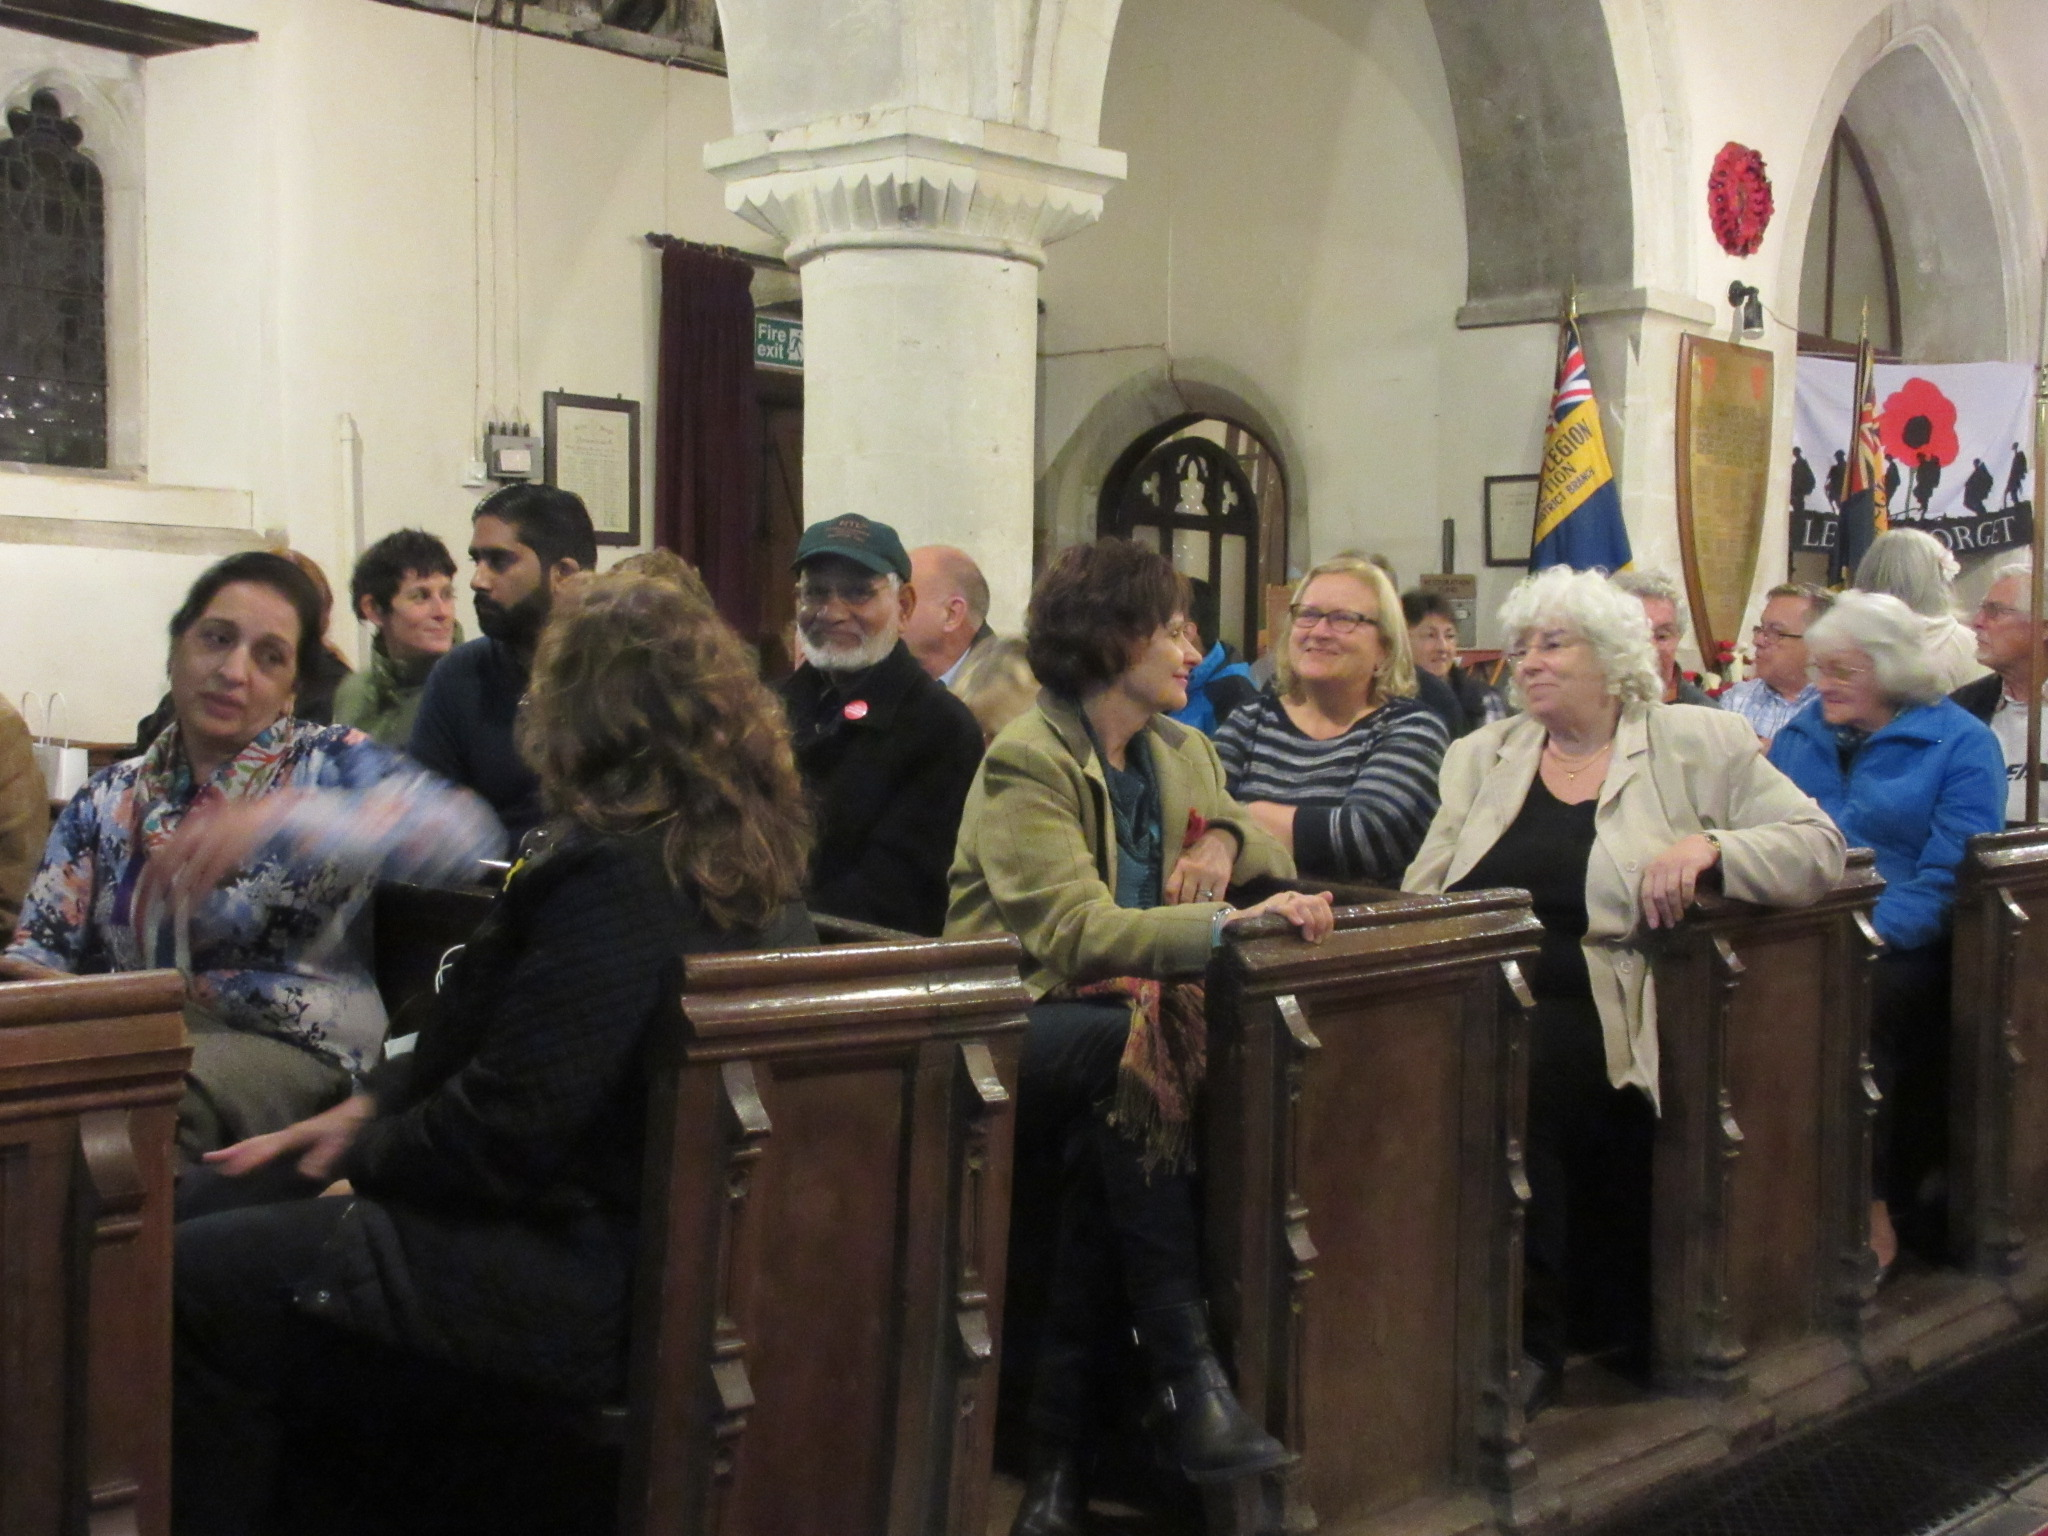 Residents and local politicians rub shoulders in the pews